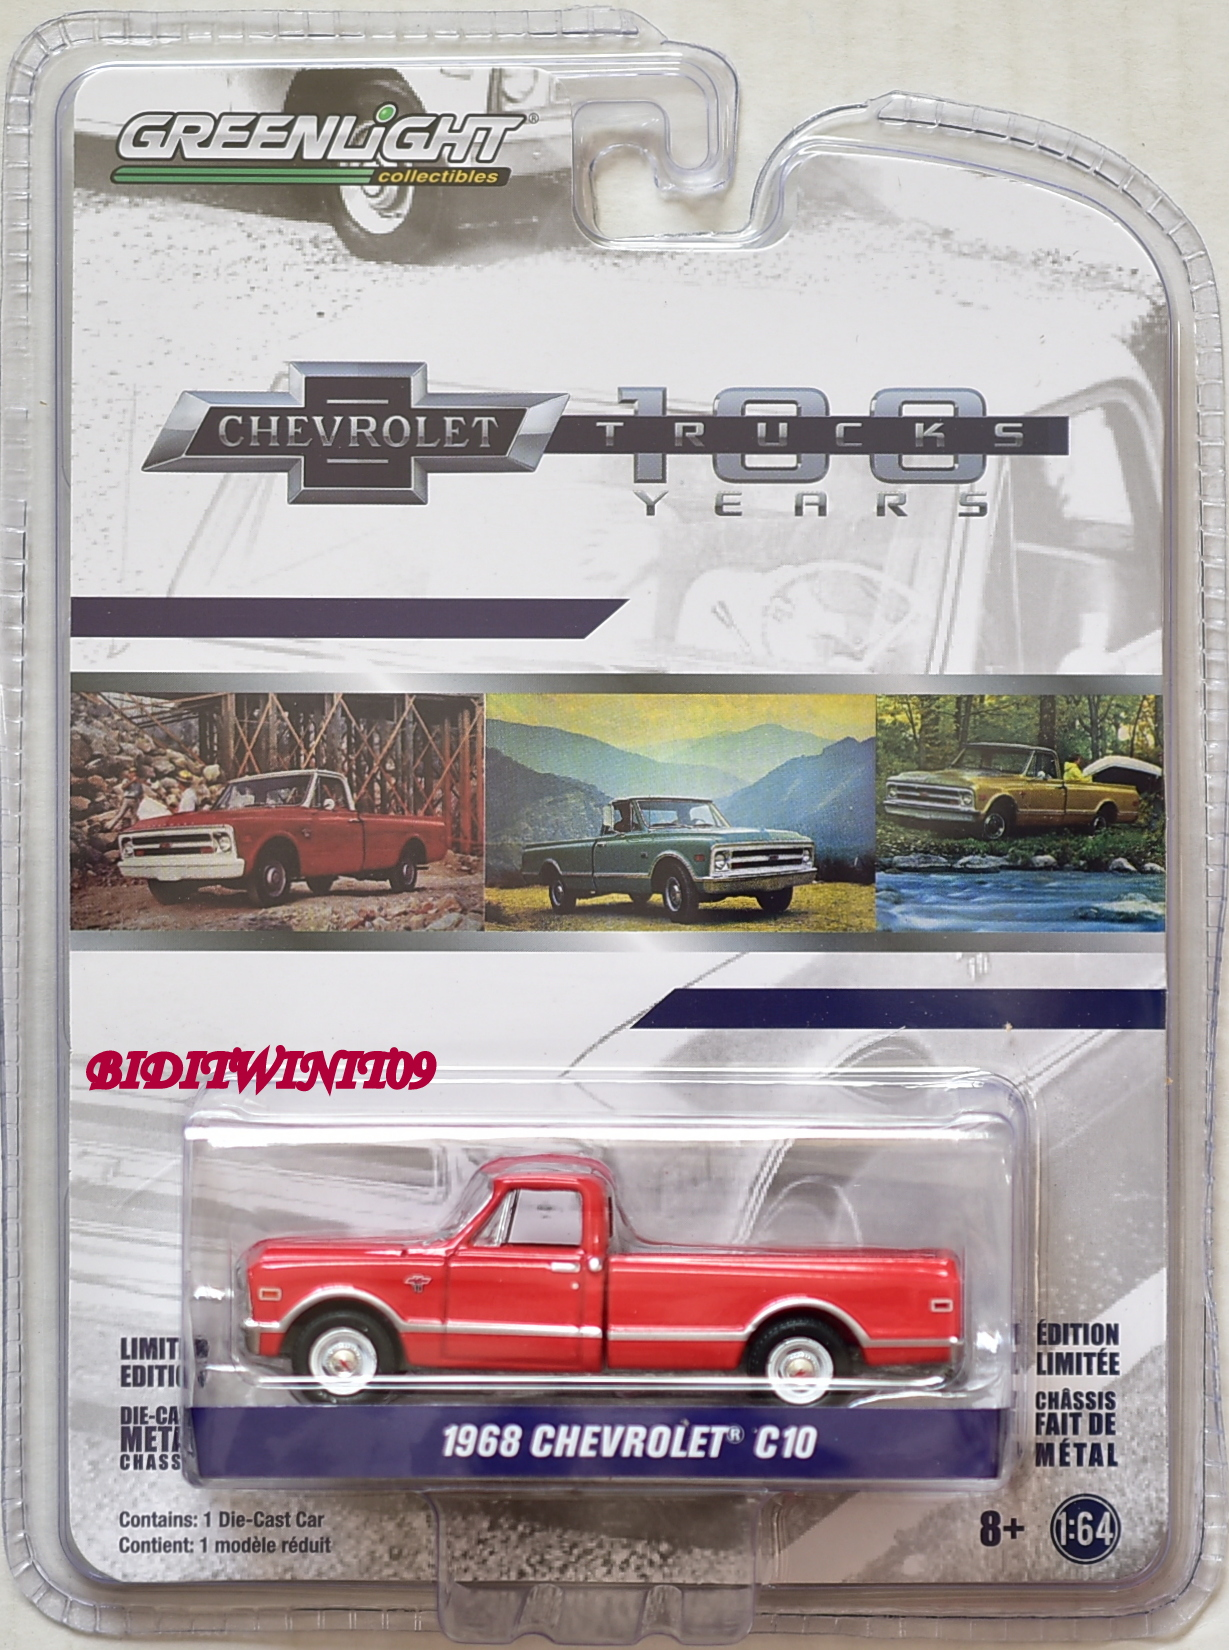 GREENLIGHT ANNIVERSARY SERIES 6 1968 CHEVROLET C10